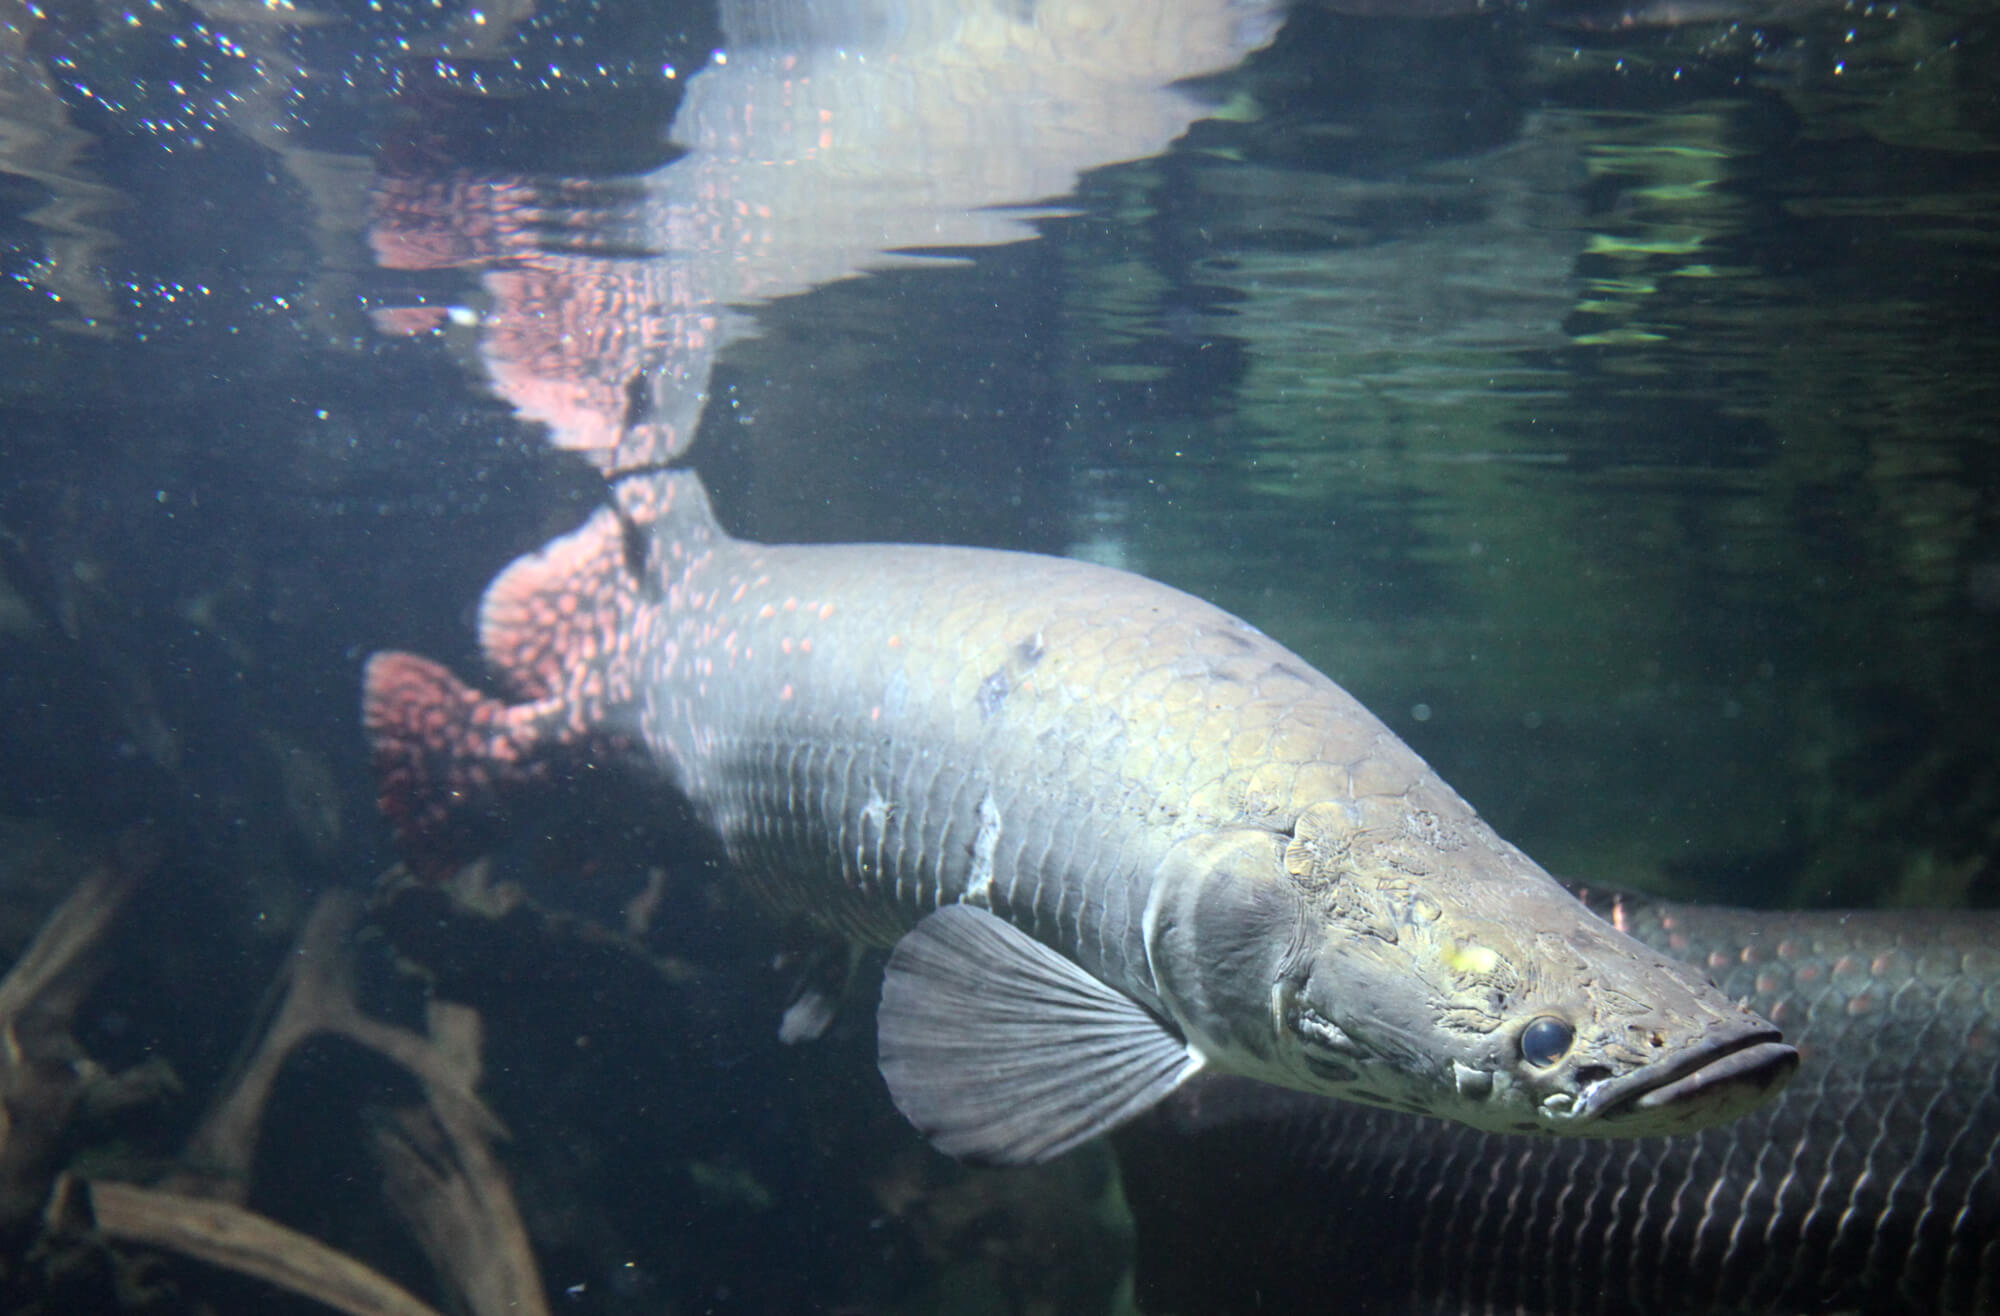 A real Amazon river monster - the Arapaima